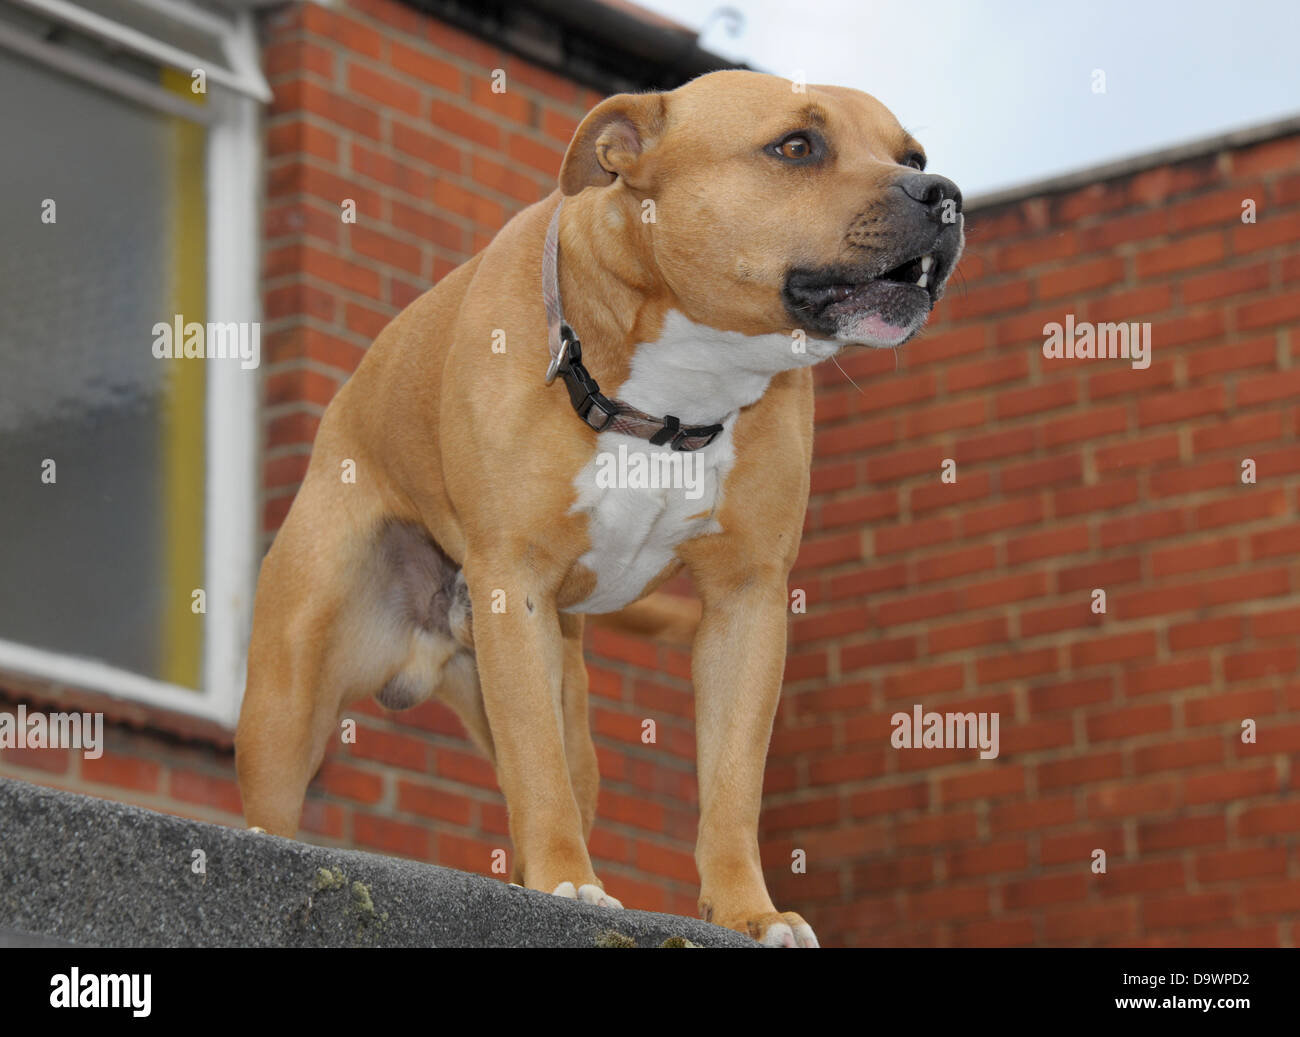 A Staffordshire Bull Terrier defends his urban territory. - Stock Image